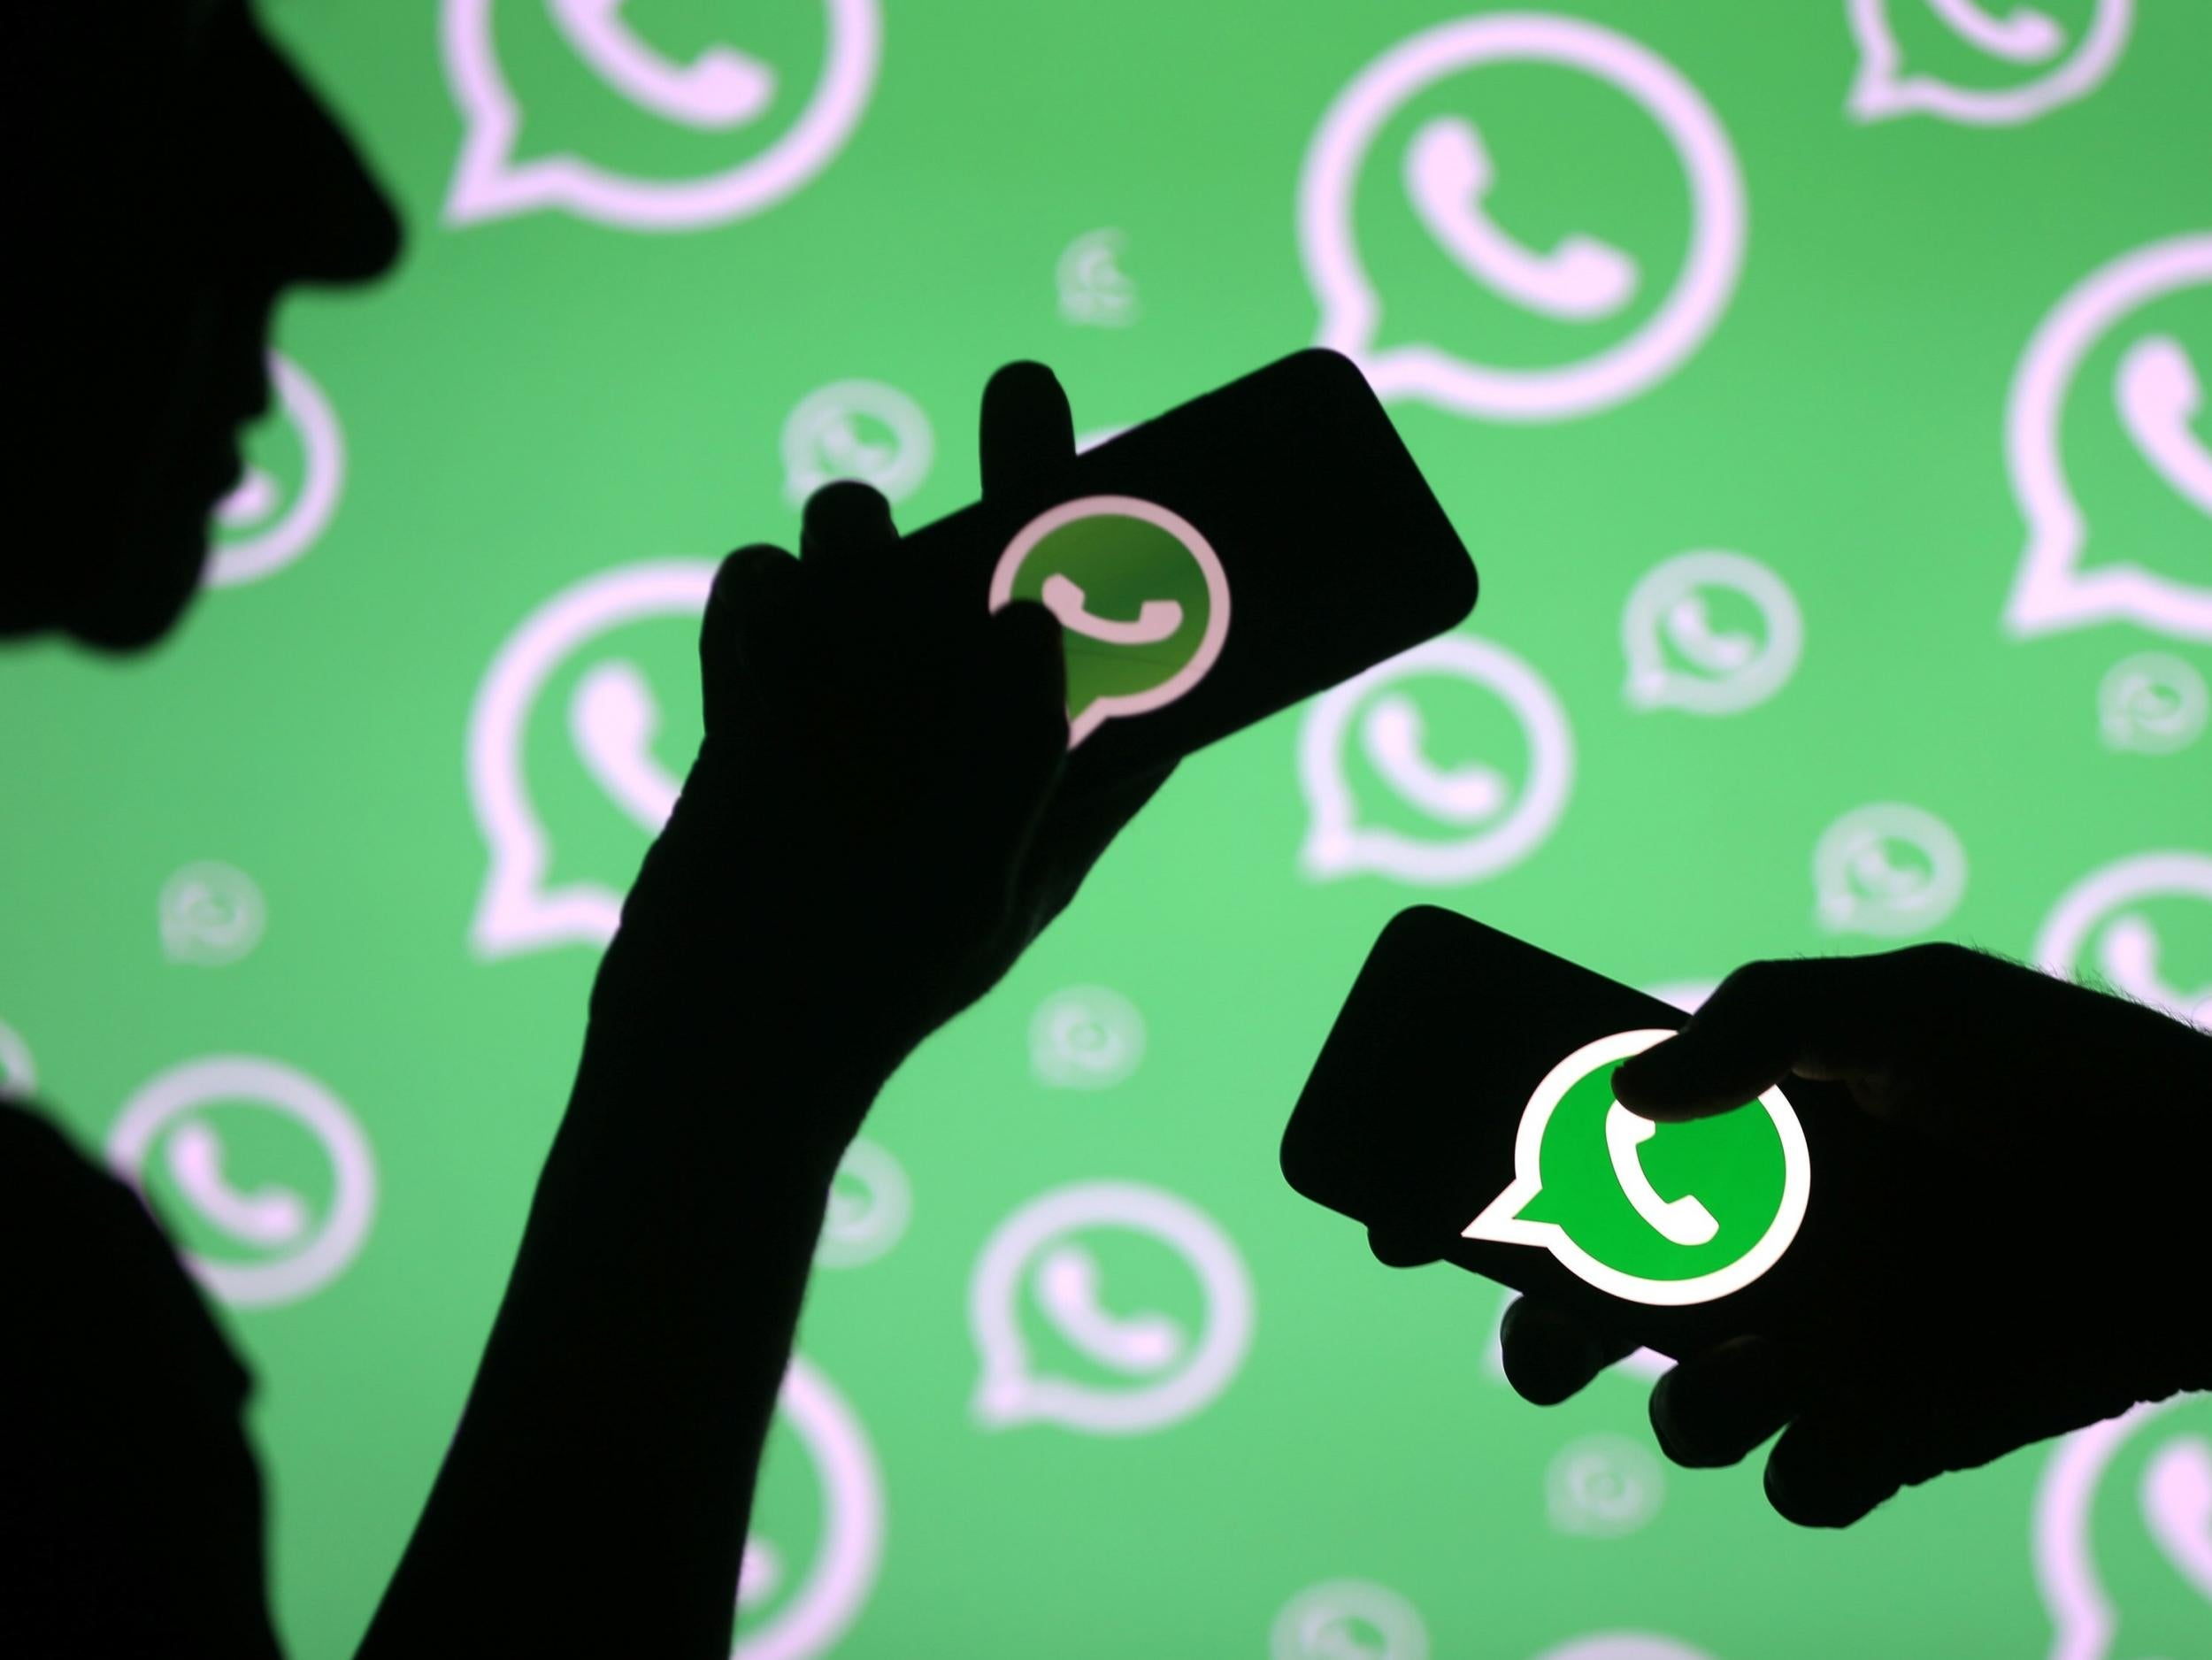 WhatsApp 'secretly part of spy programme', Telegram founder claims